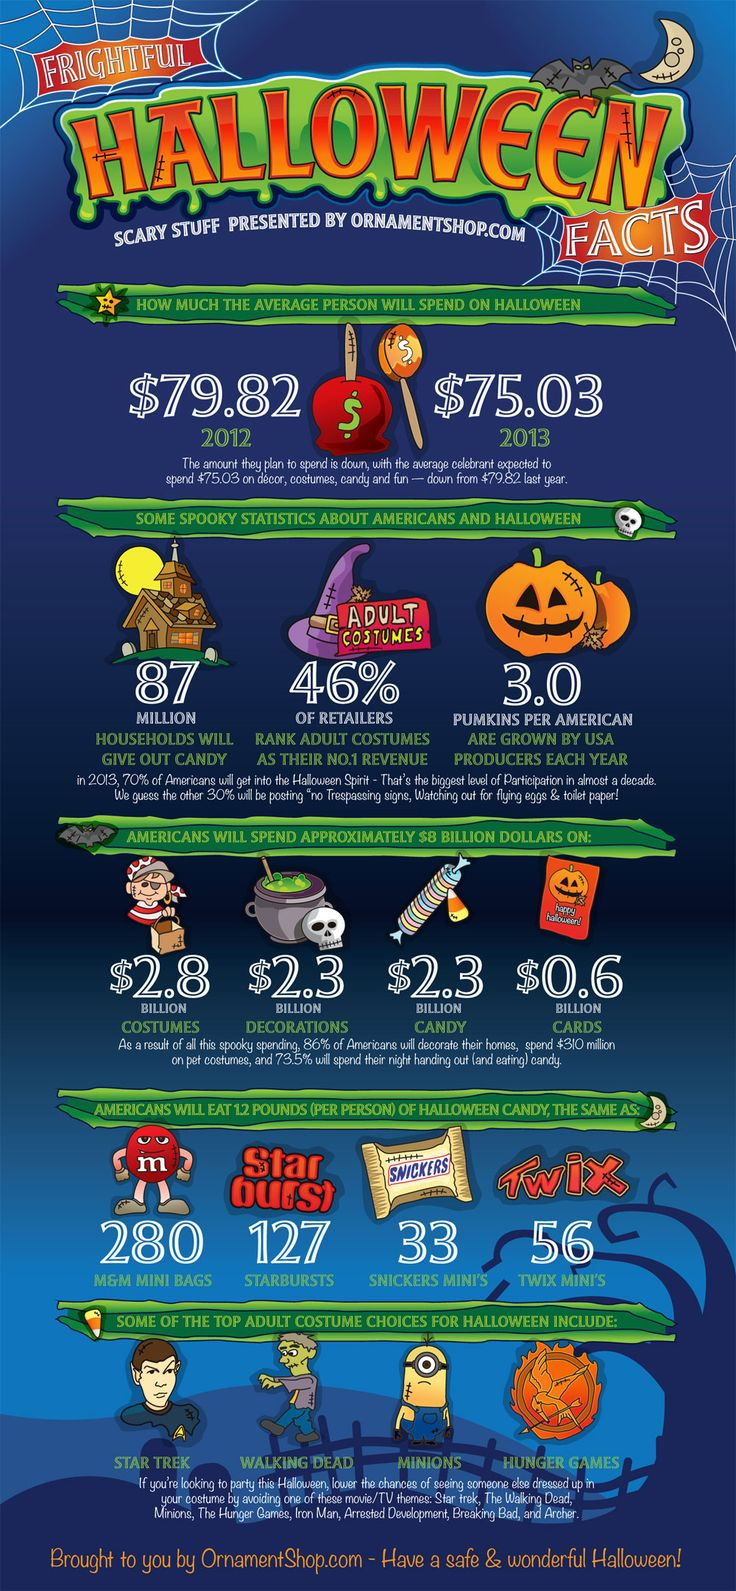 Halloween Ornaments, Costumes & Candy: An Infographic of Fun Facts